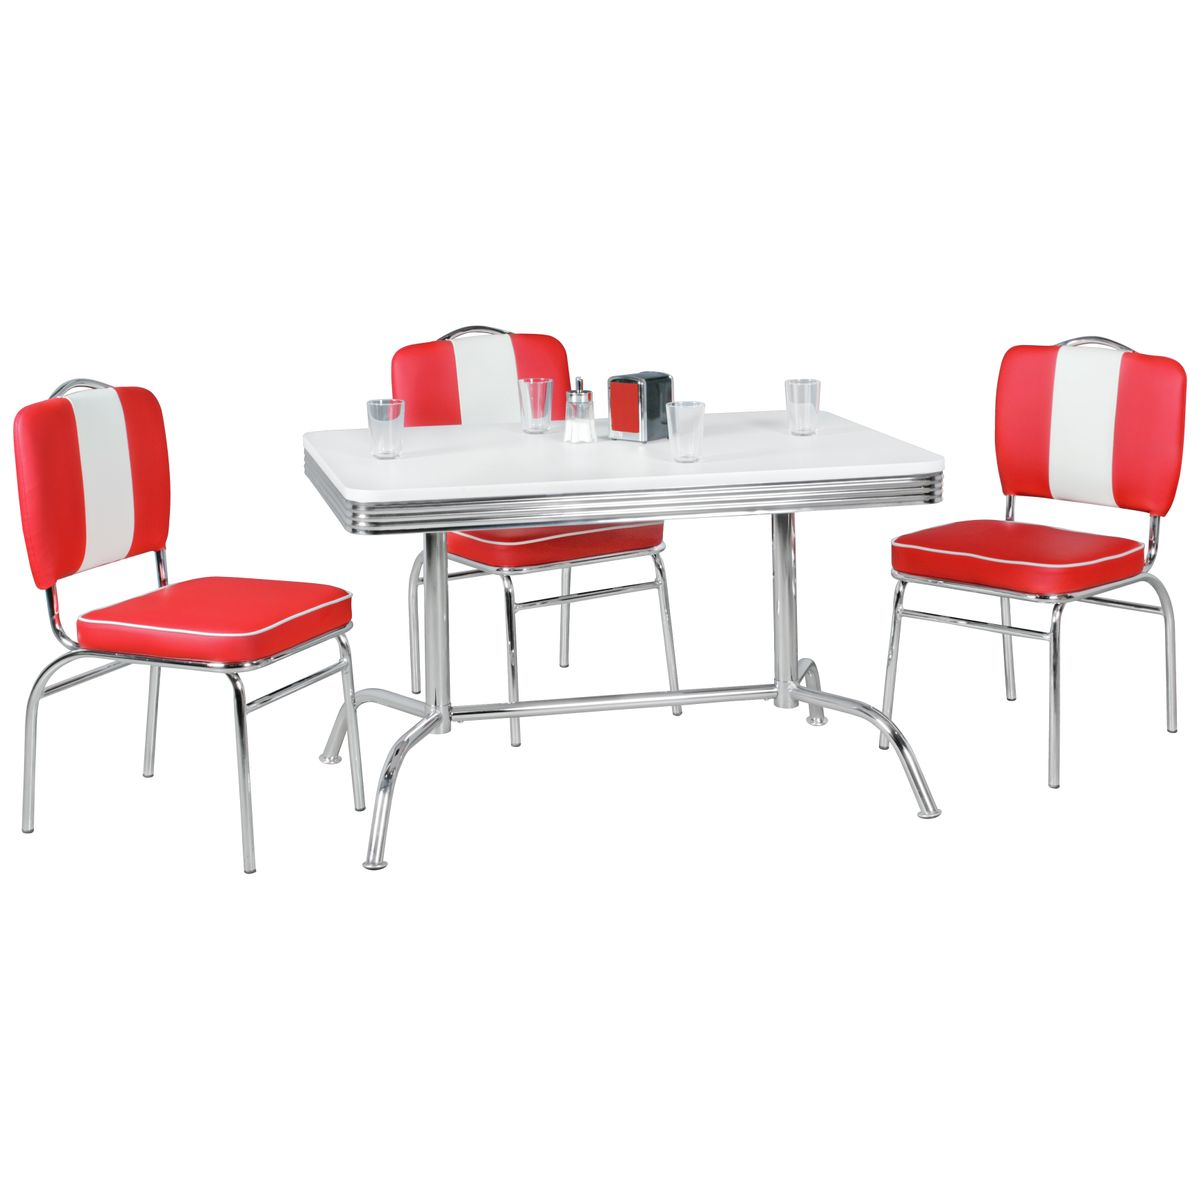 dining table 120x80 cm american diner white alu design retro usa bistro table ebay. Black Bedroom Furniture Sets. Home Design Ideas